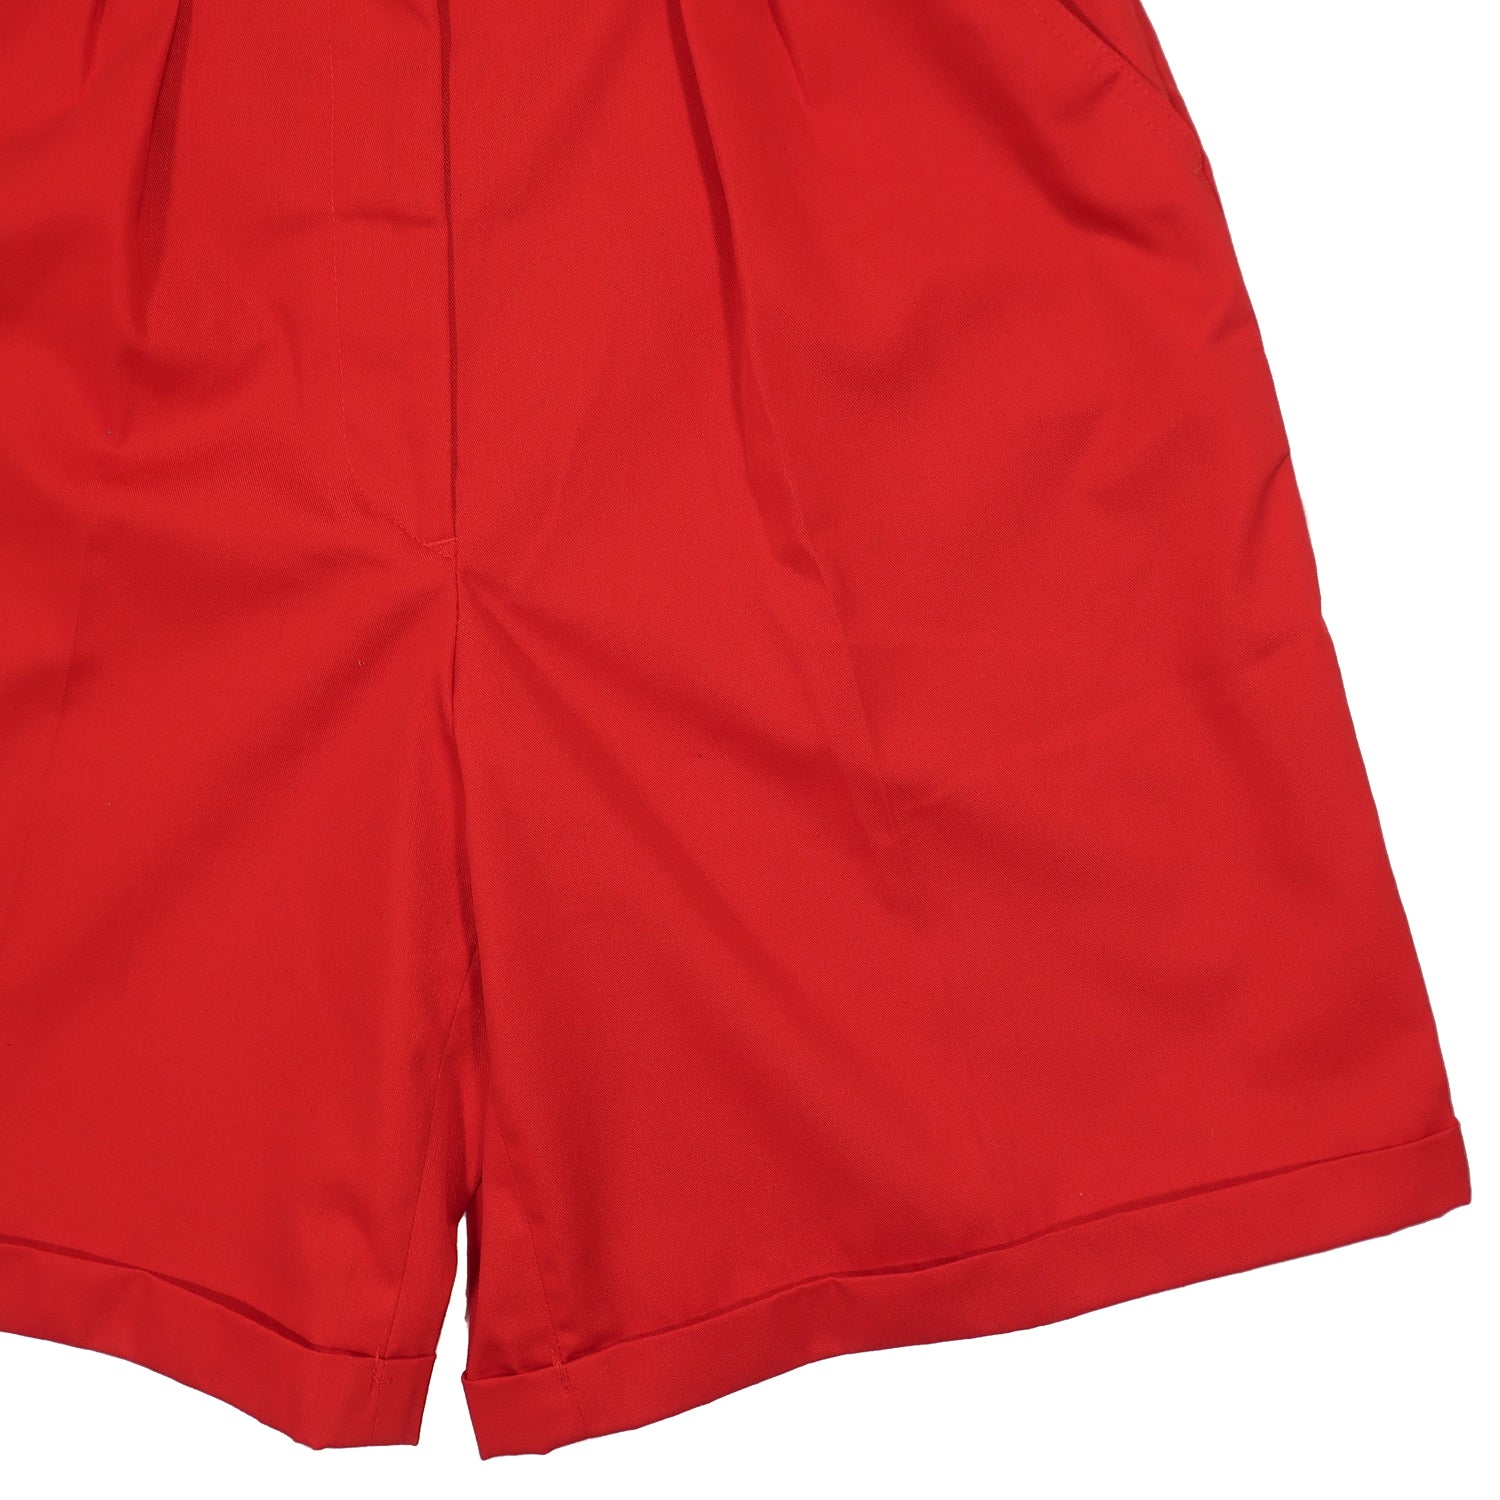 "Second Room Vintage Clothing. Vintage high waisted, pleated, red, pleated mom shorts. Zipper fly and button closure, front pockets, one back pocket. Unlined with 12"" rise, and cuffed bottom. Free North American shipping on all orders."